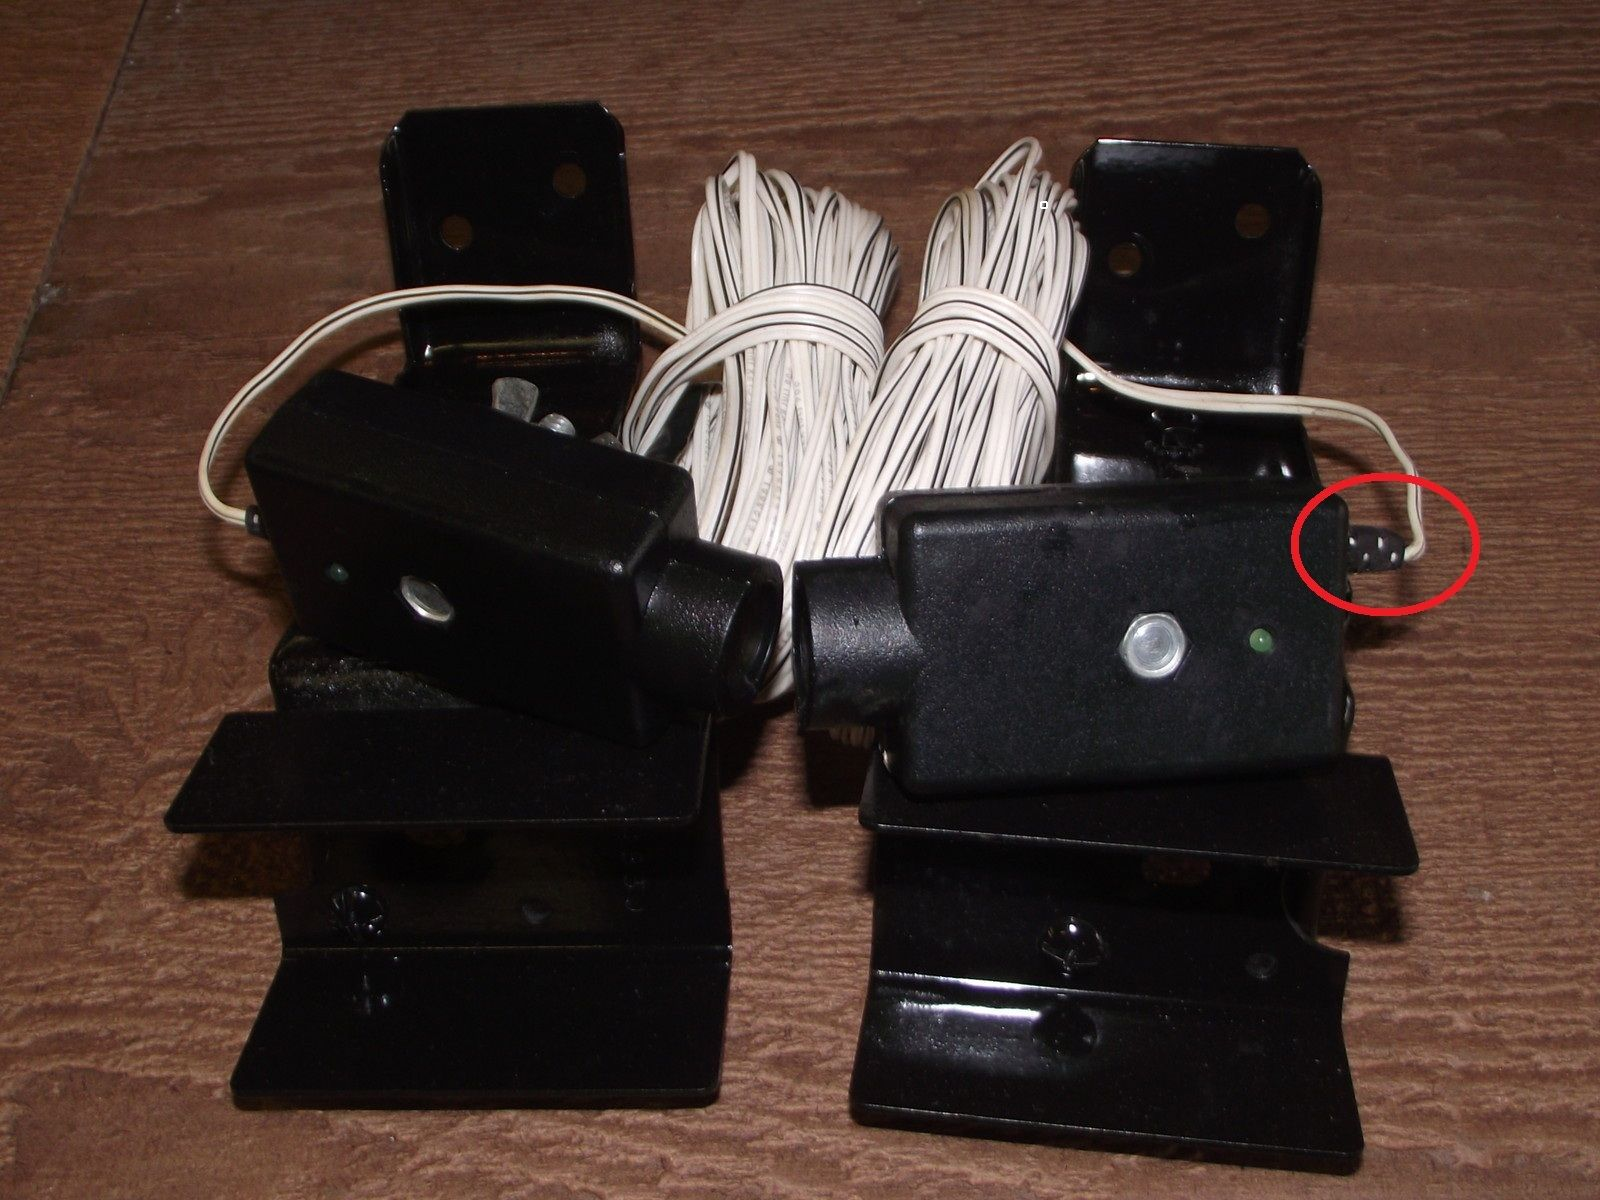 Genie Garage Door Opener Photo Eye Safety Sensors